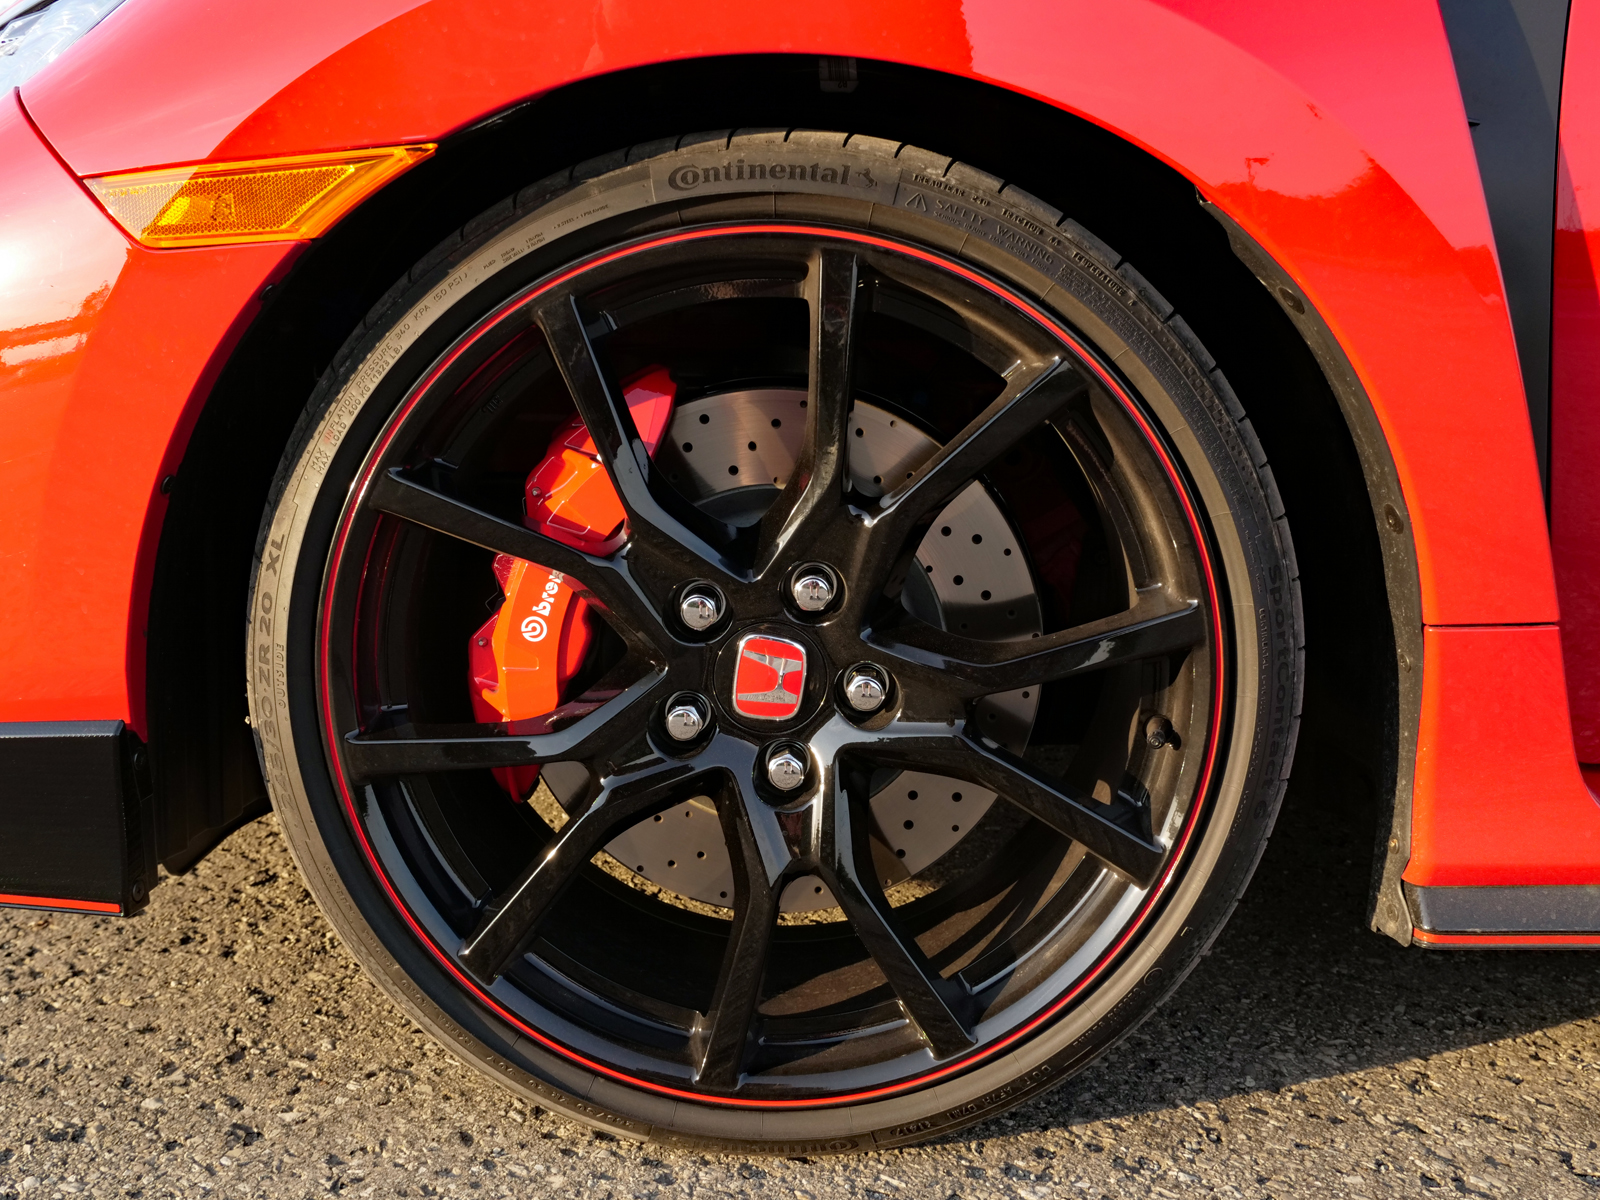 2018 Honda Civic Type R Rims - Honda Civic